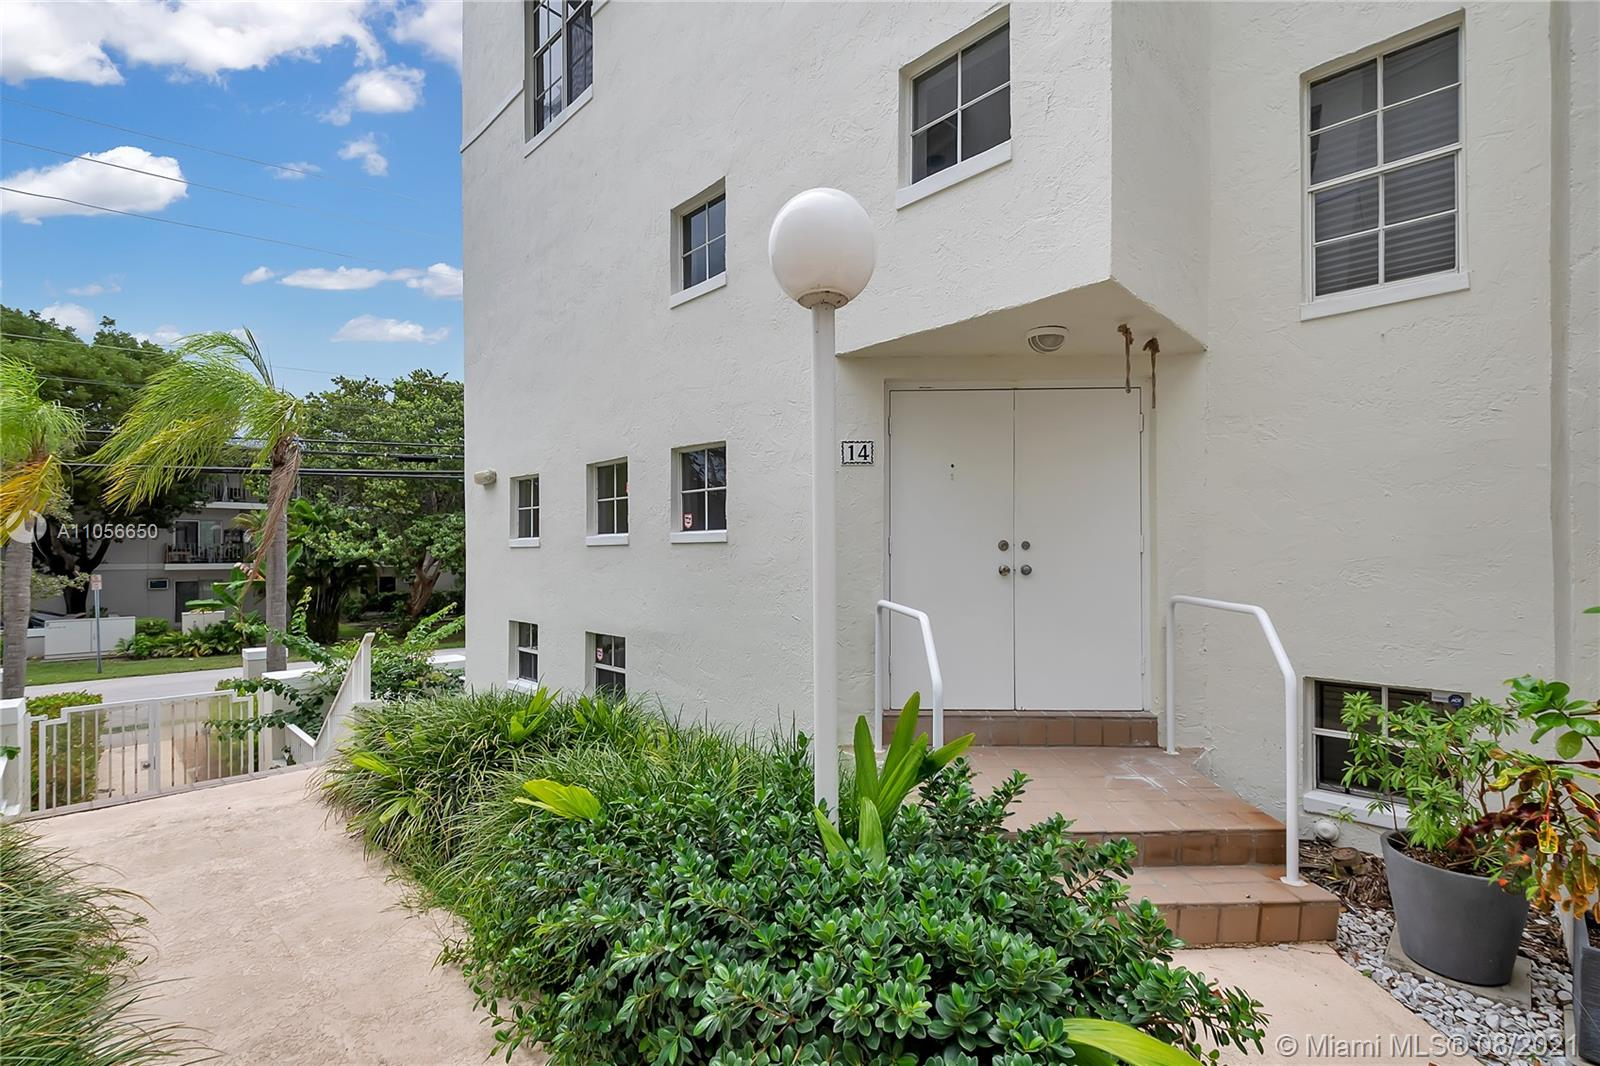 Spacious Tri-level Condo/Townhouse in Downtown South Miami - The Fountains. Plus a one car garage. Fantastic location -Walk to everything - Winn Dixie directly across street, all kinds of restaurants and shopping. Walk to Metrorail. Close to Univ. of Miami. Also, close to Publix and Whole Foods.  Features fireplace, one bedroom on 1st level with full bath. Two A/C units, full size washer & dryer. Large master with seating area.  Tile floors and some carpet.  Light and bright, double front doors, One bedroom and bathroom on ground level - next to garage entry and also ground entrance.  Gated main entrance from courtyard on second level to living room and kitchen and powder room.  No Flood Zone.   Check this link for free shuttle service in the City of South Miami - The City of Pleasant